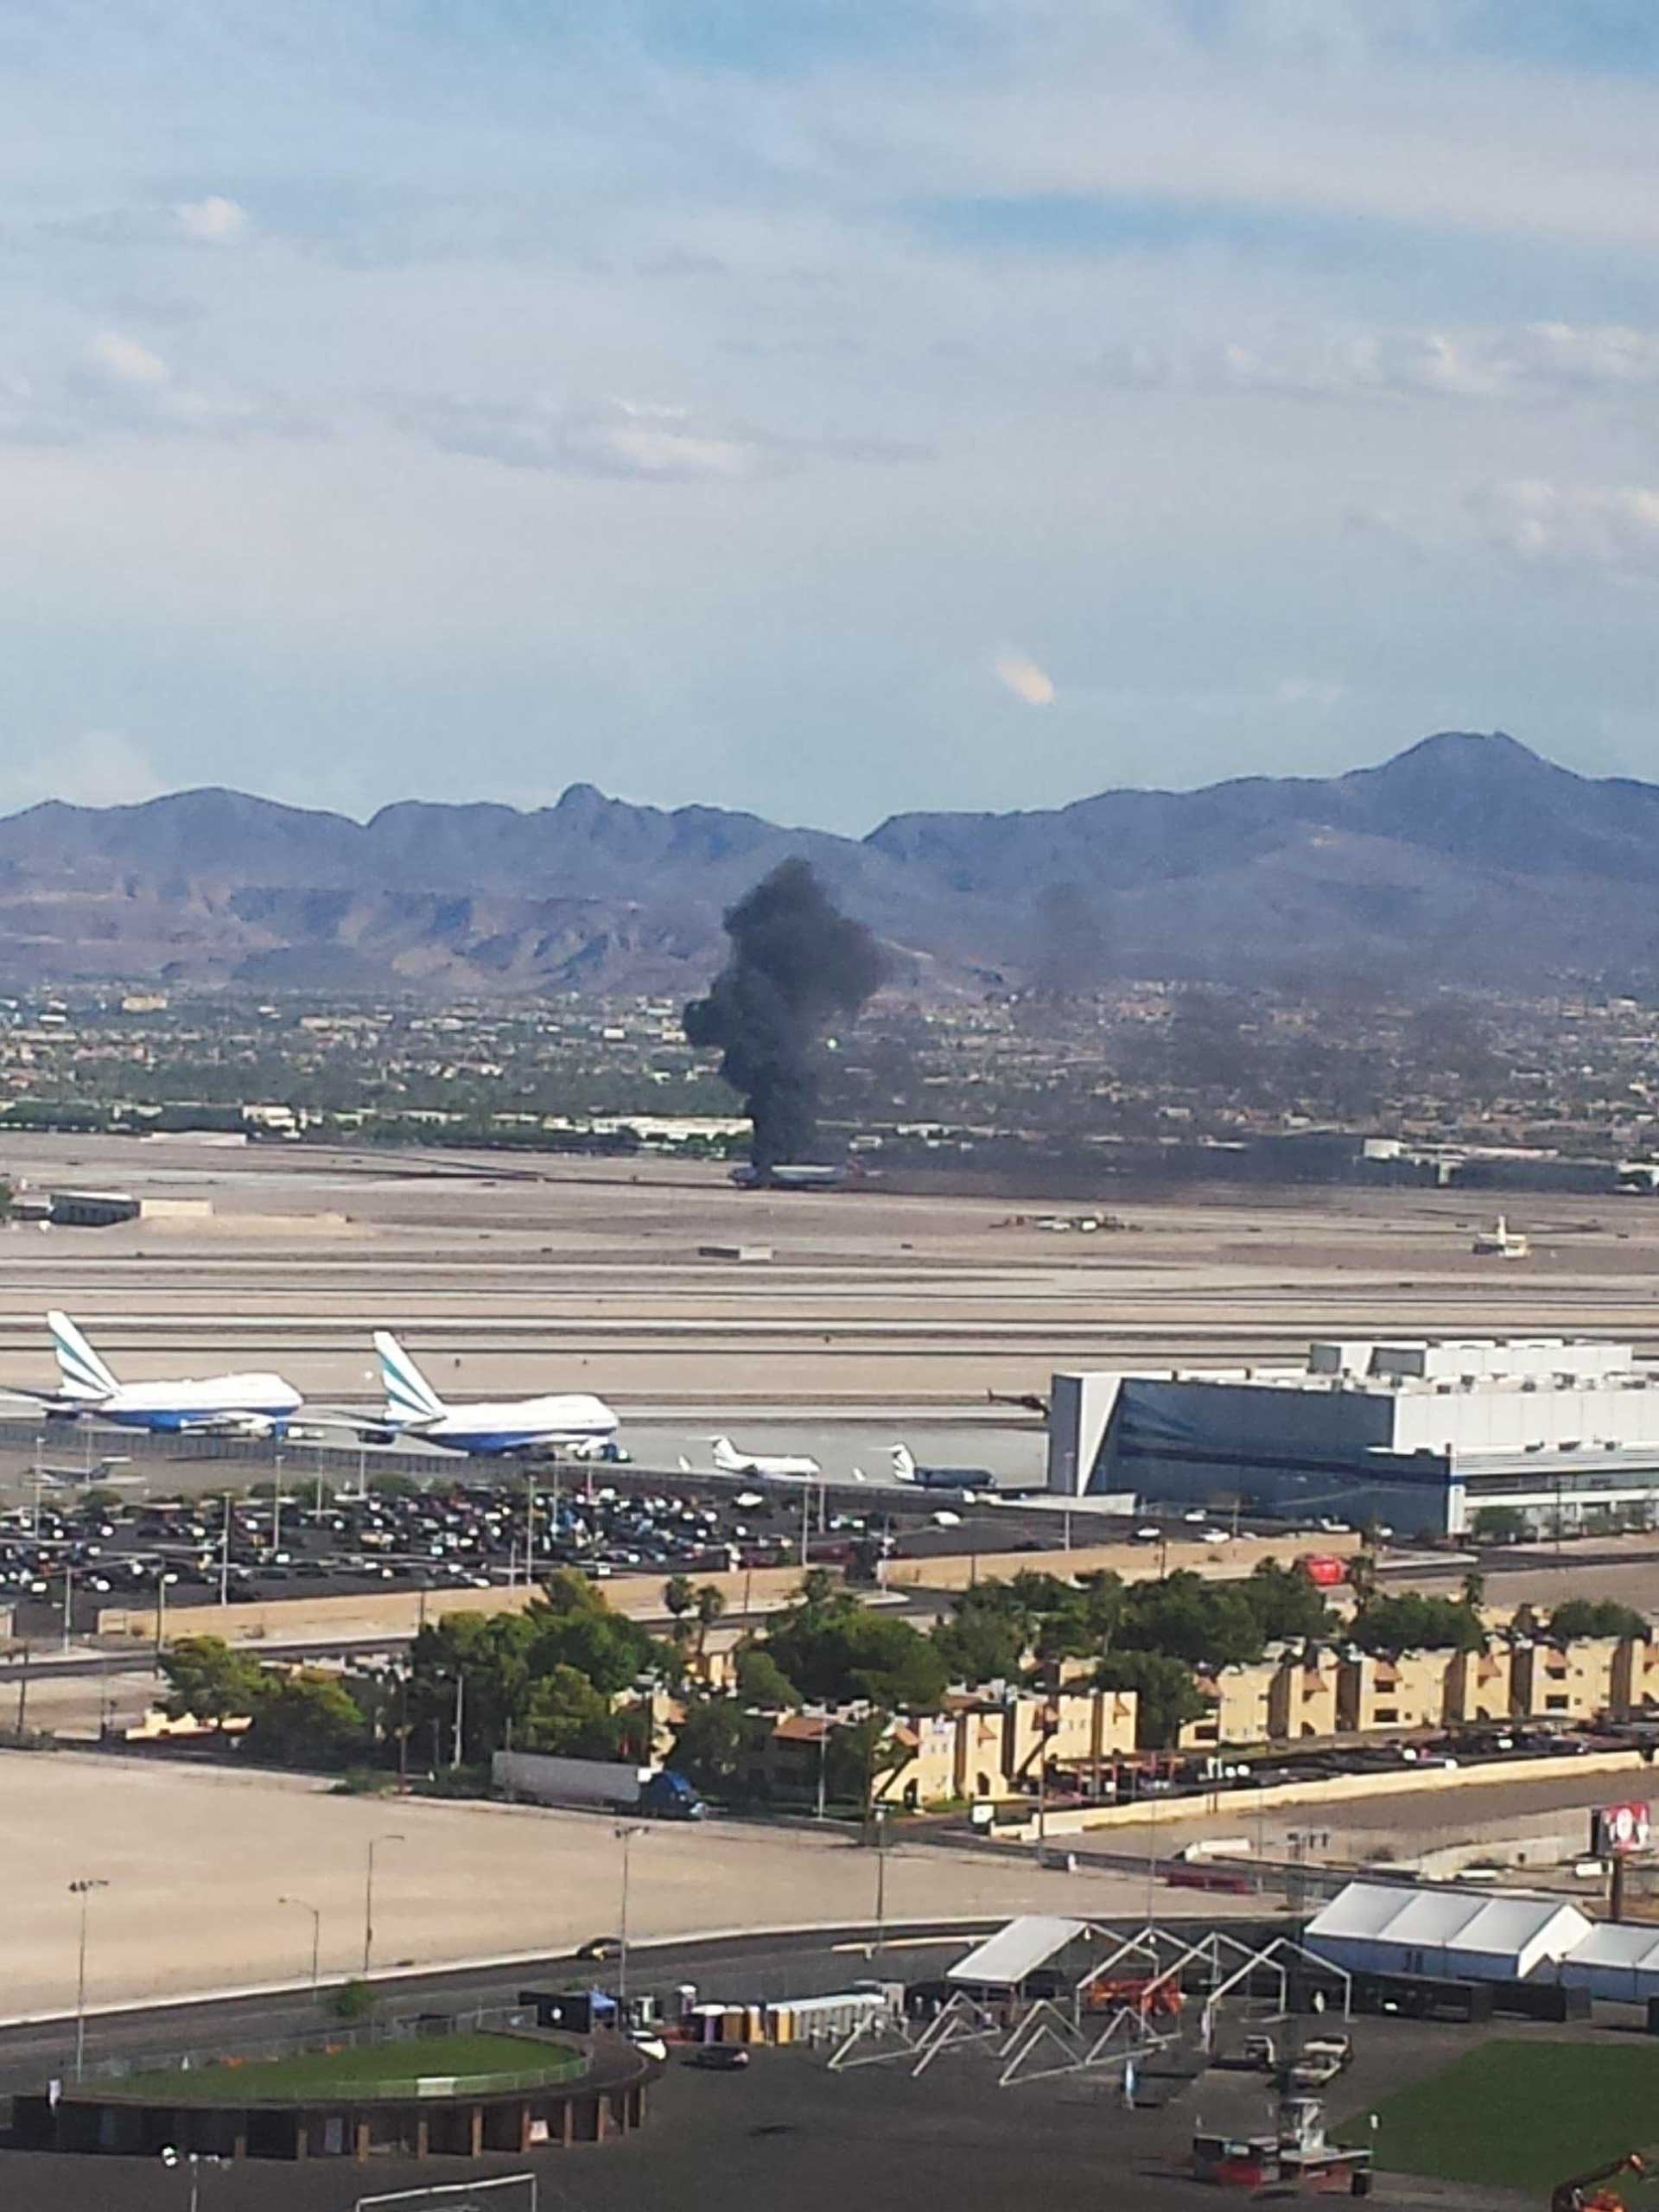 A British Airways plane seen on fire on the tarmac at Las Vegas airport on Sept. 8, 2015.